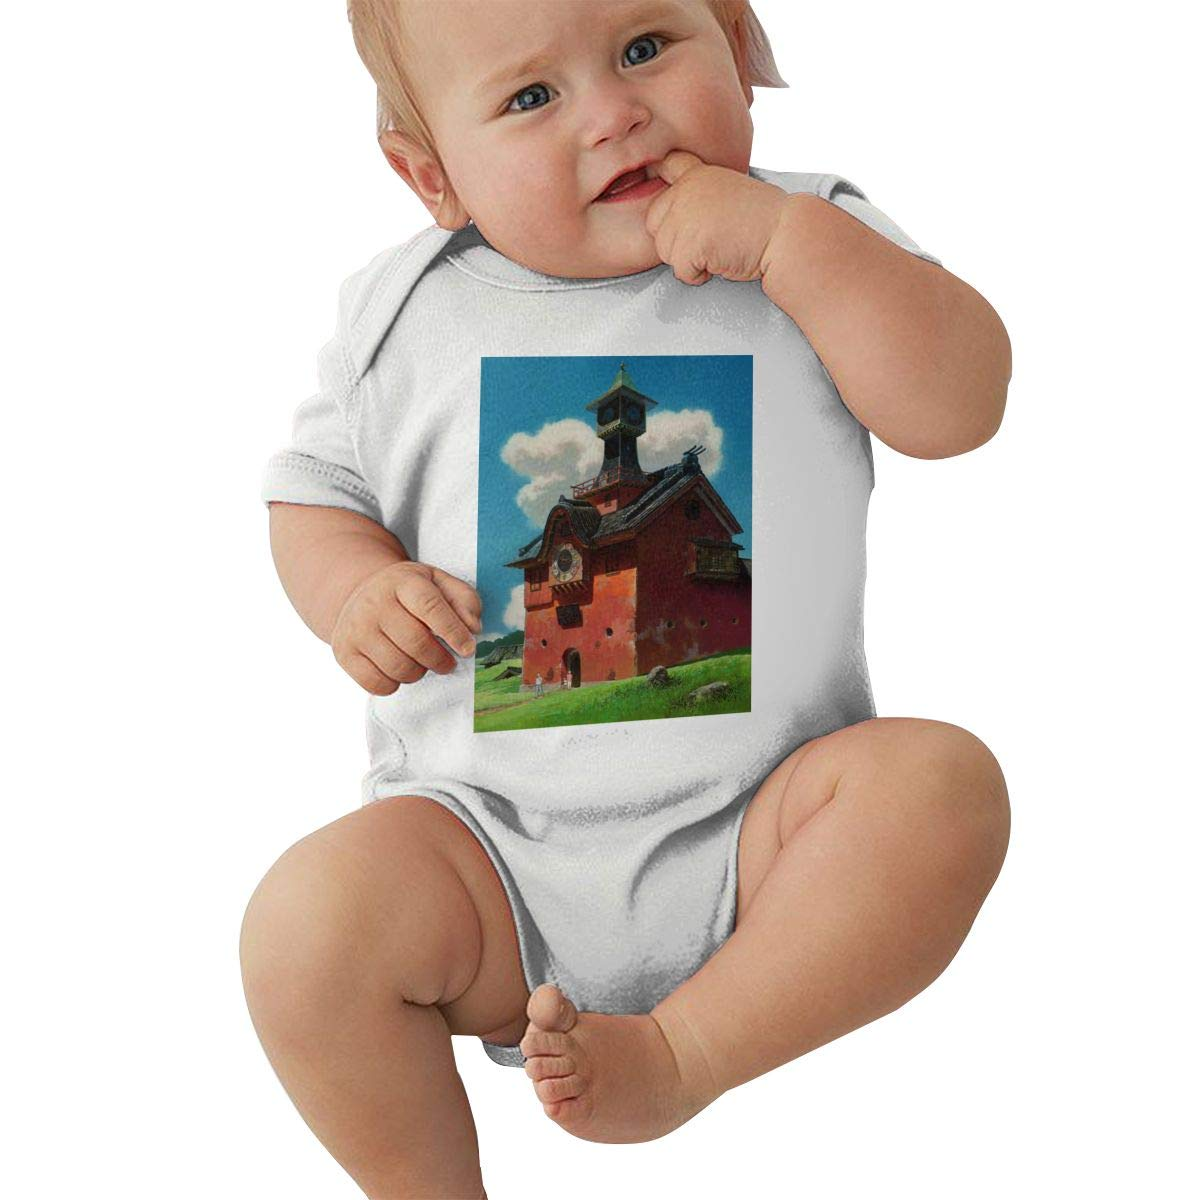 Juwuwenhuachua Baby Crew Neck Short-Sleeve Climbing Clothes Spirited Away Funny Jumpsuits Sleepwear Black